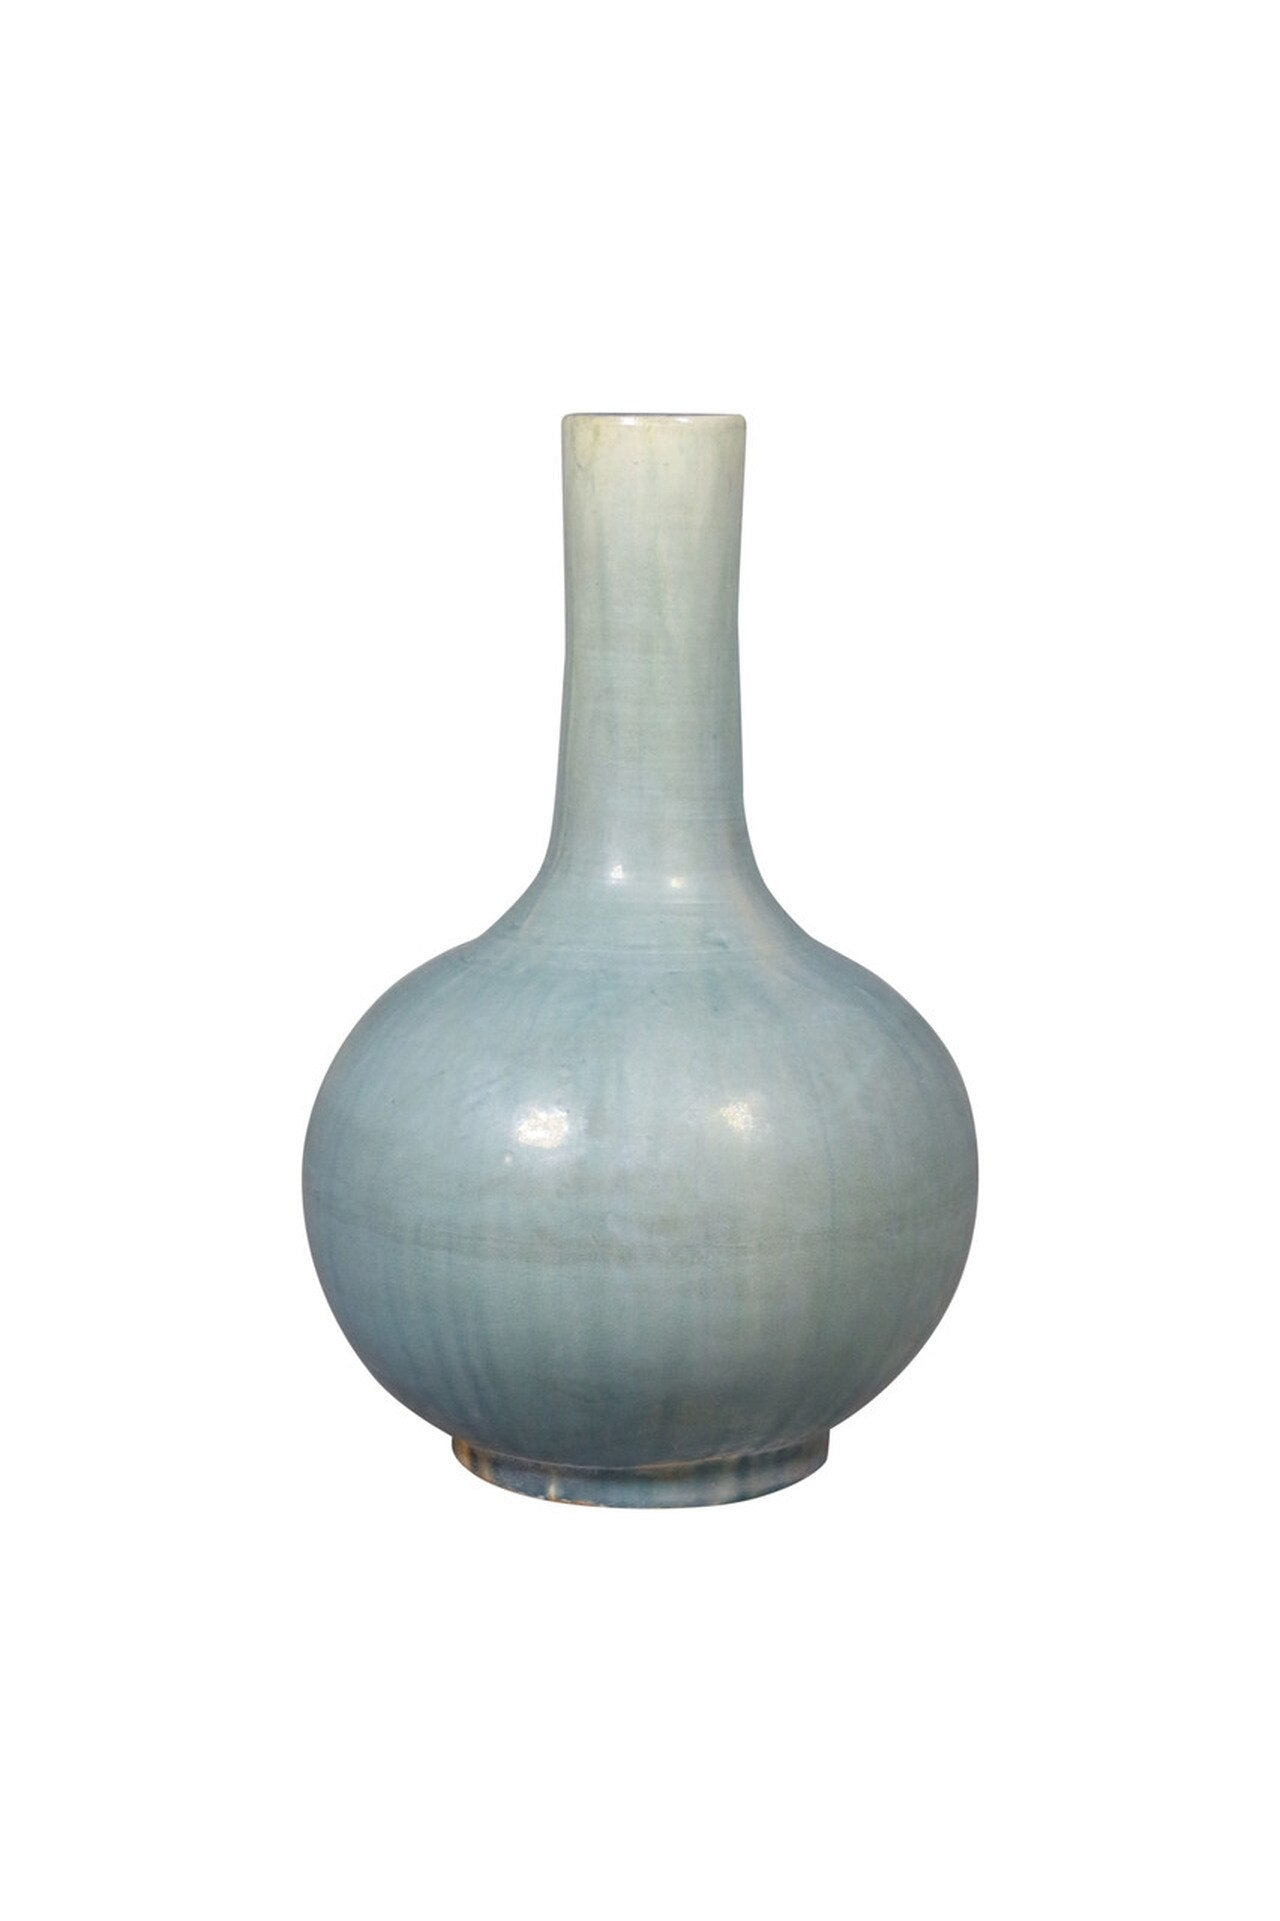 Vintage Green Ceramic Globular Vase